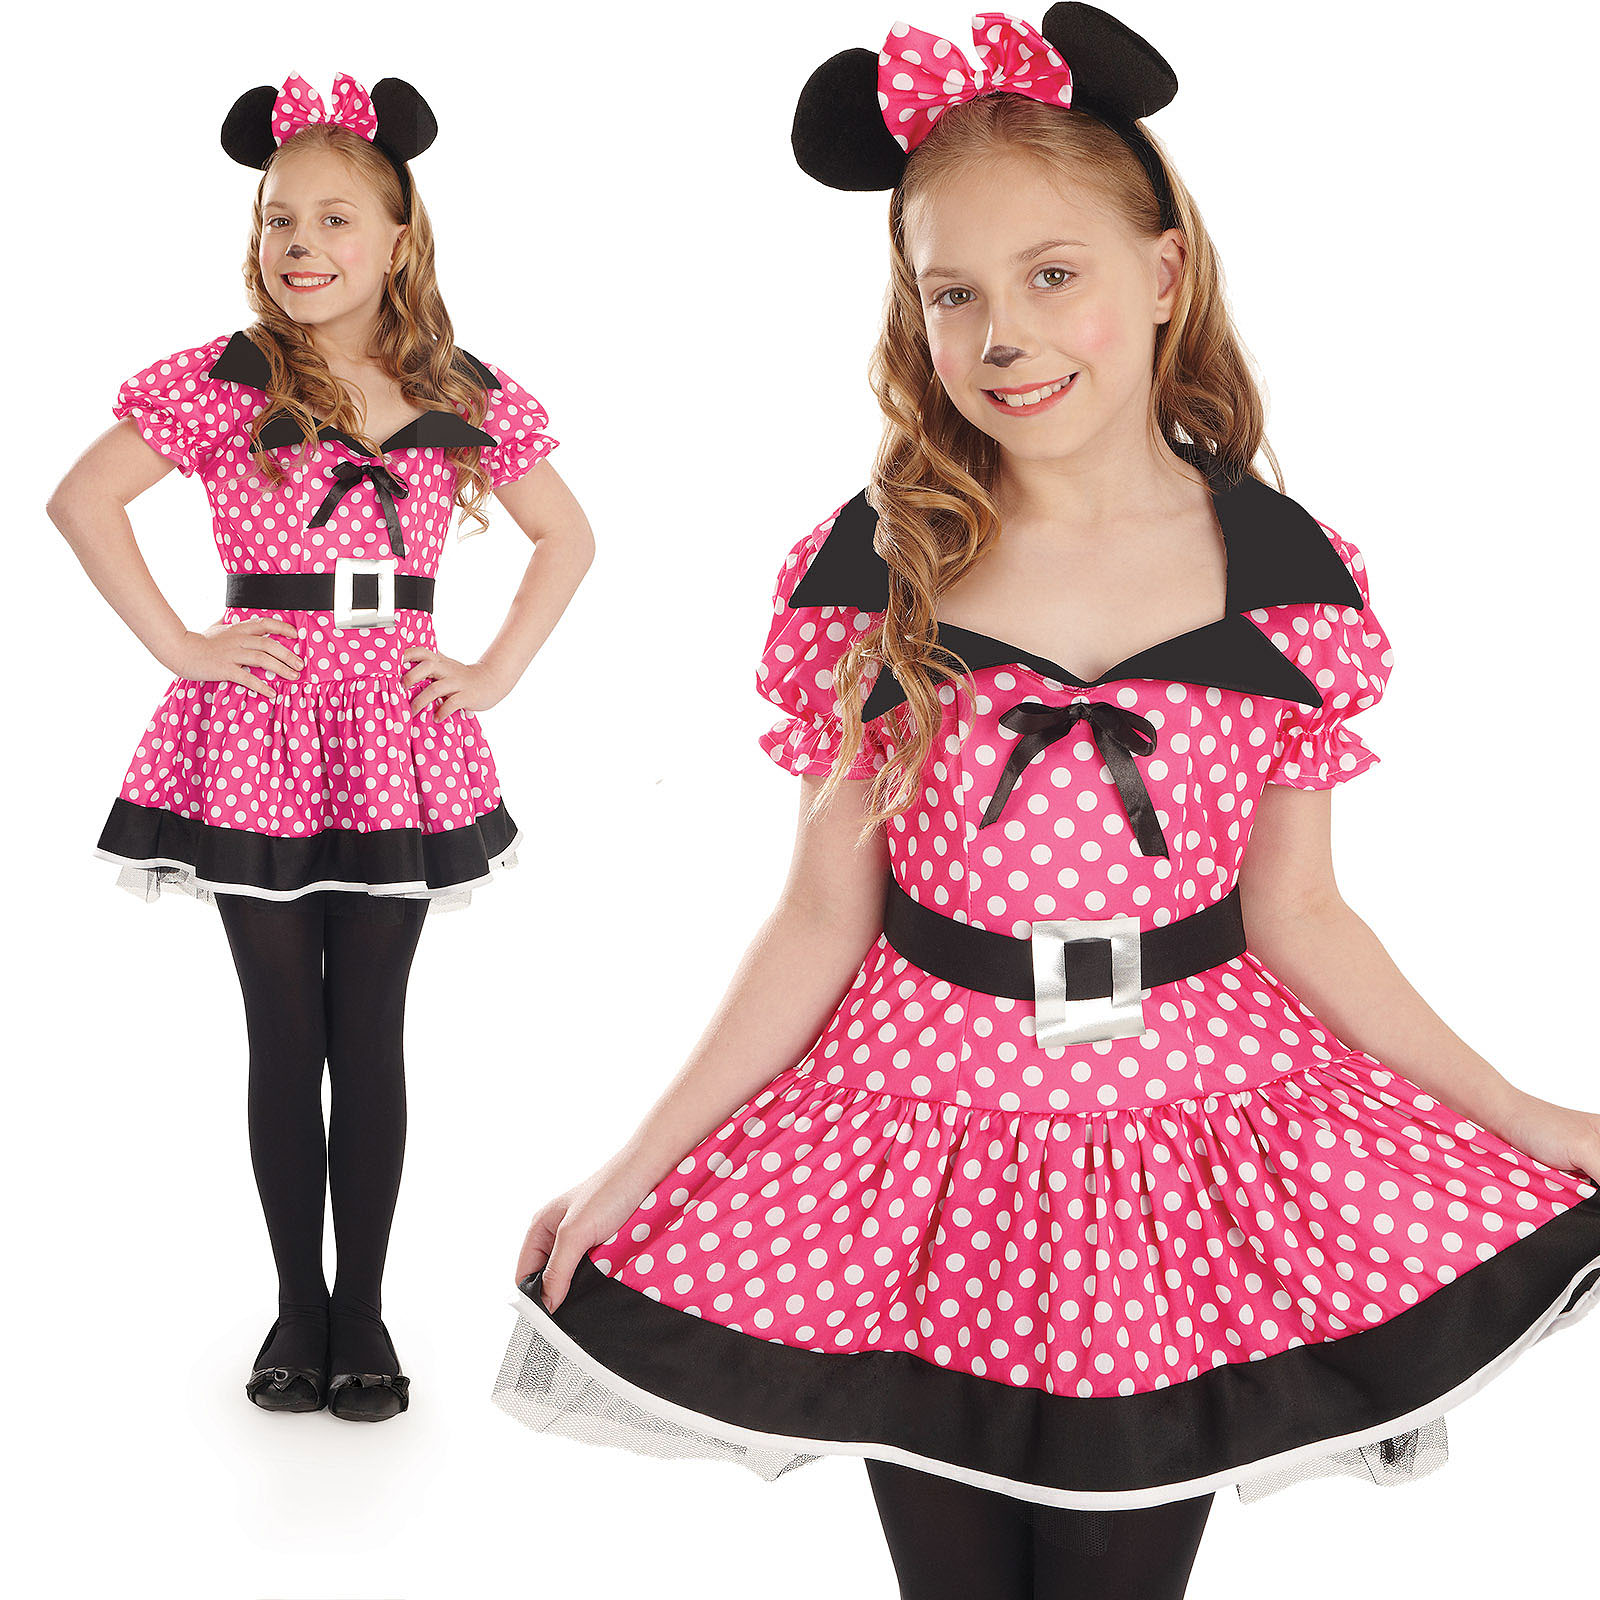 Childrens-Minnie-Mouse-Fancy-Dress-Costume-Disney-Kids-Girls-Outfit-4-12-Yrs thumbnail 4